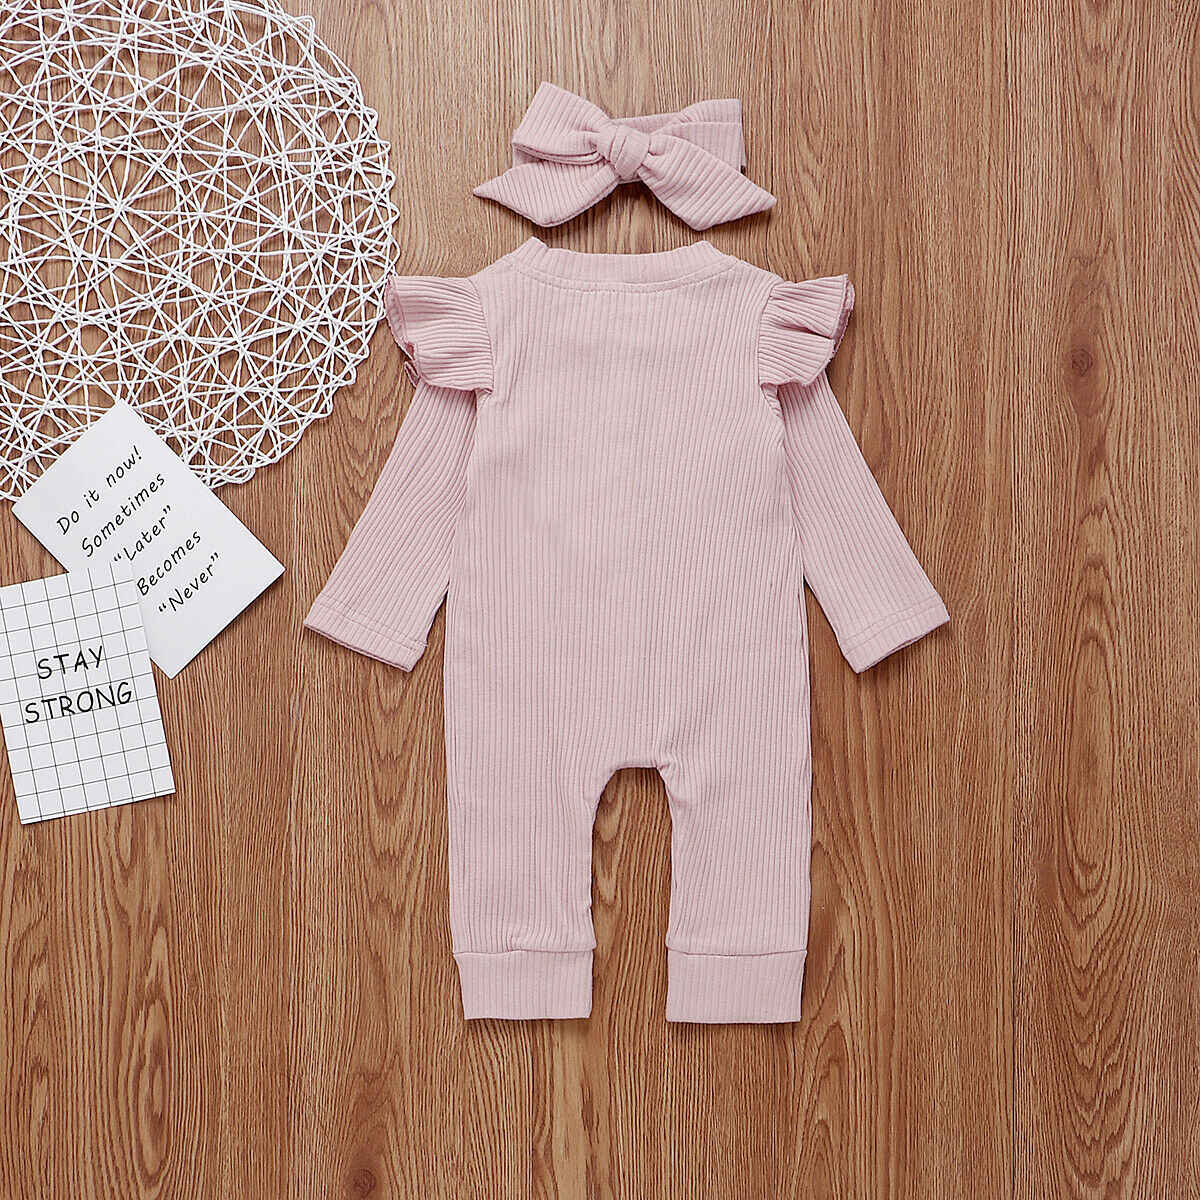 New 2Pcs Baby Girl Boy Cotton Clothes Knitted Romper Jumpsuit Autumn Outfits